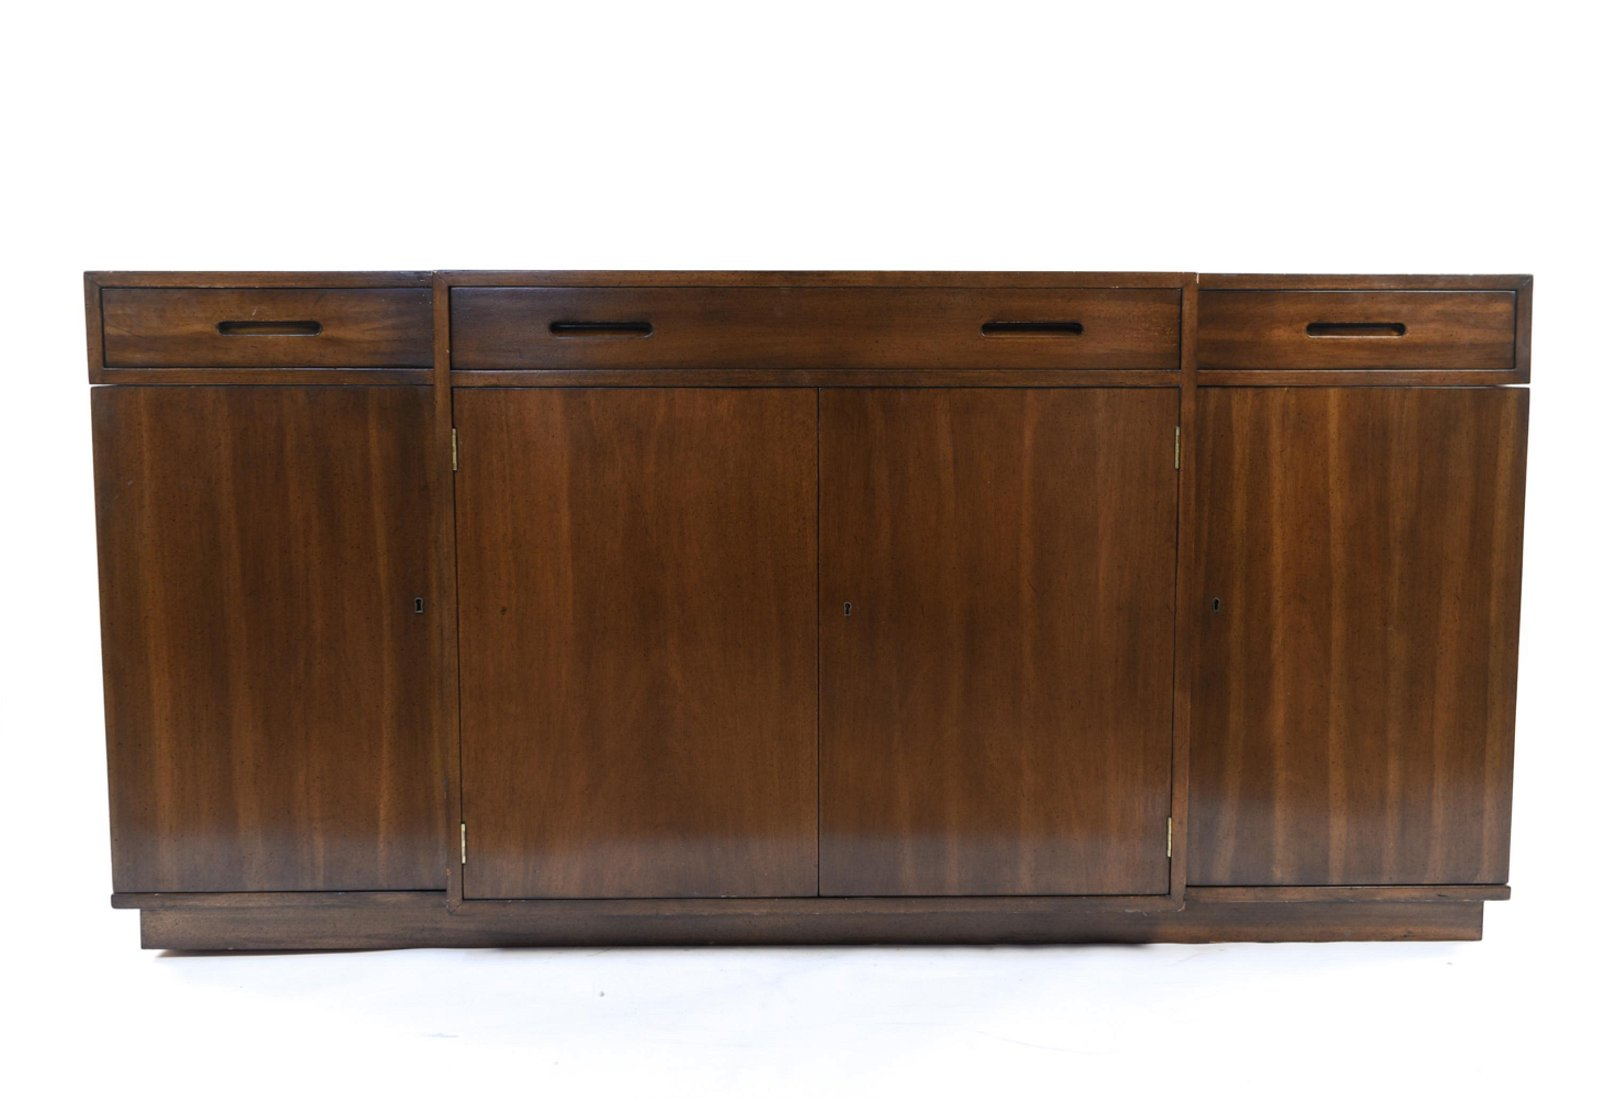 ATTR. EDWARD WORMLEY DUNBAR SIDEBOARD